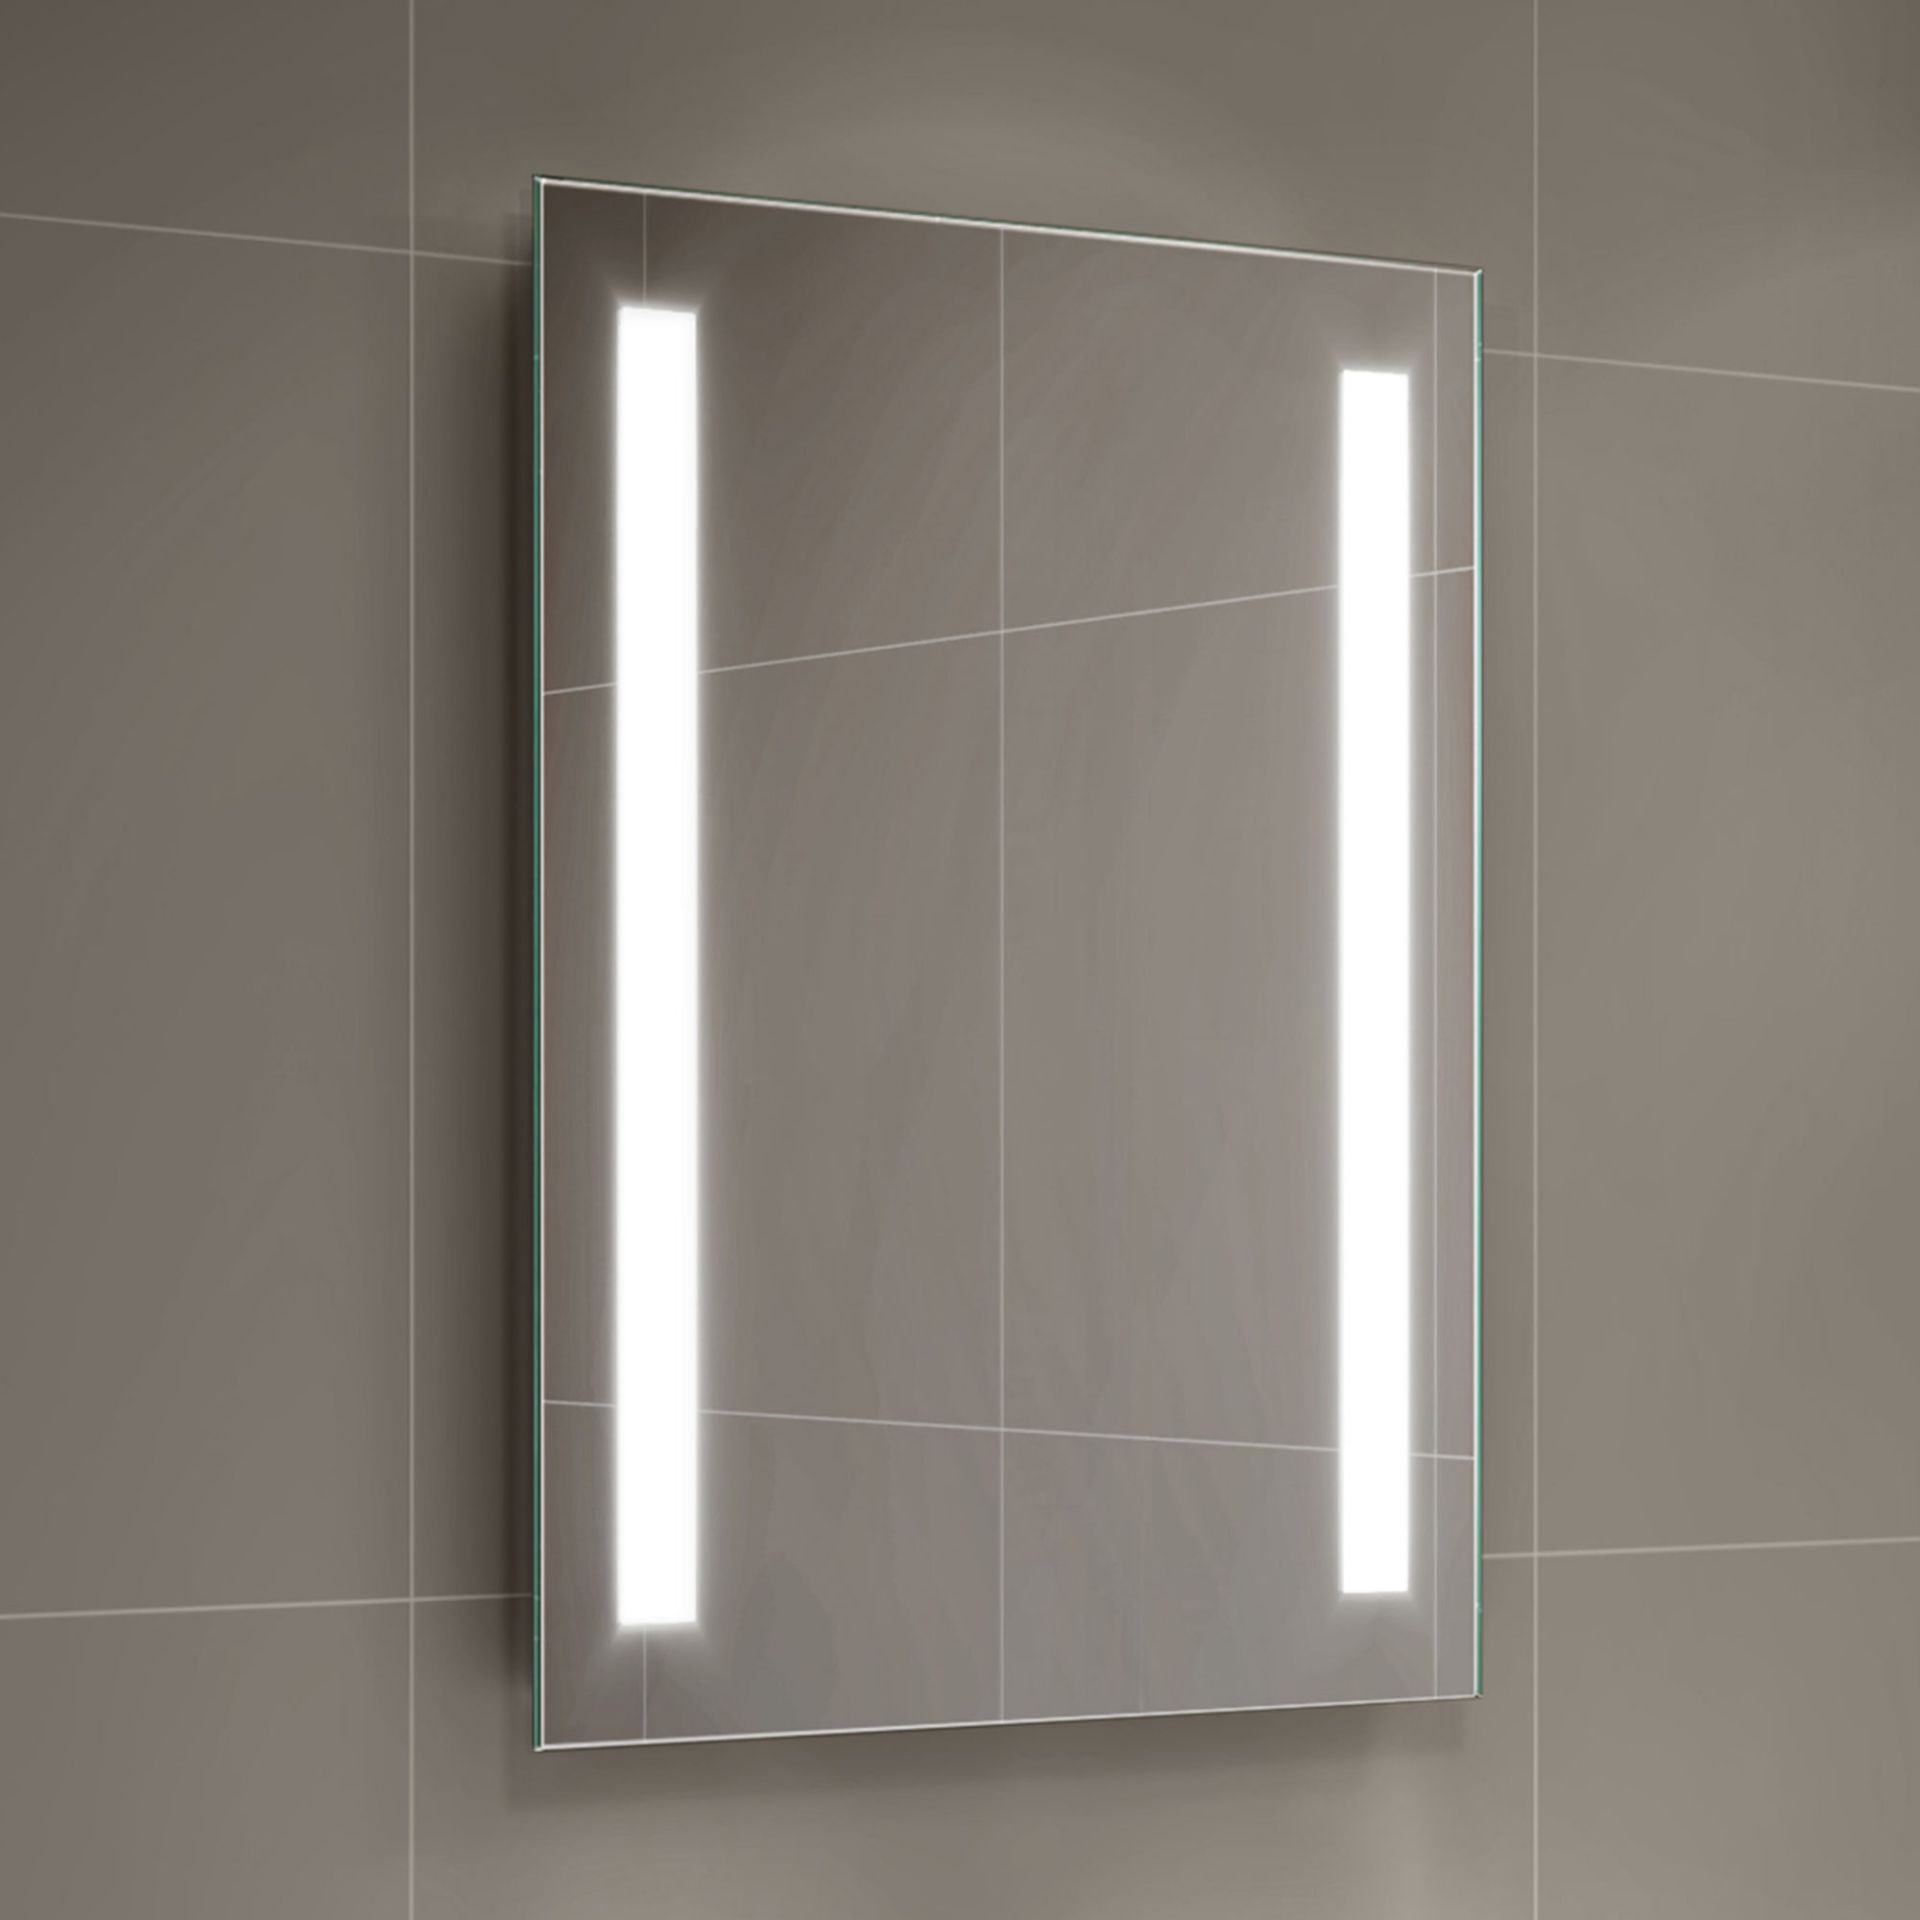 Lot 29 - (LP26) 500x700mm Omega Illuminated LED Mirror - Battery Operated. Energy saving controlled On /